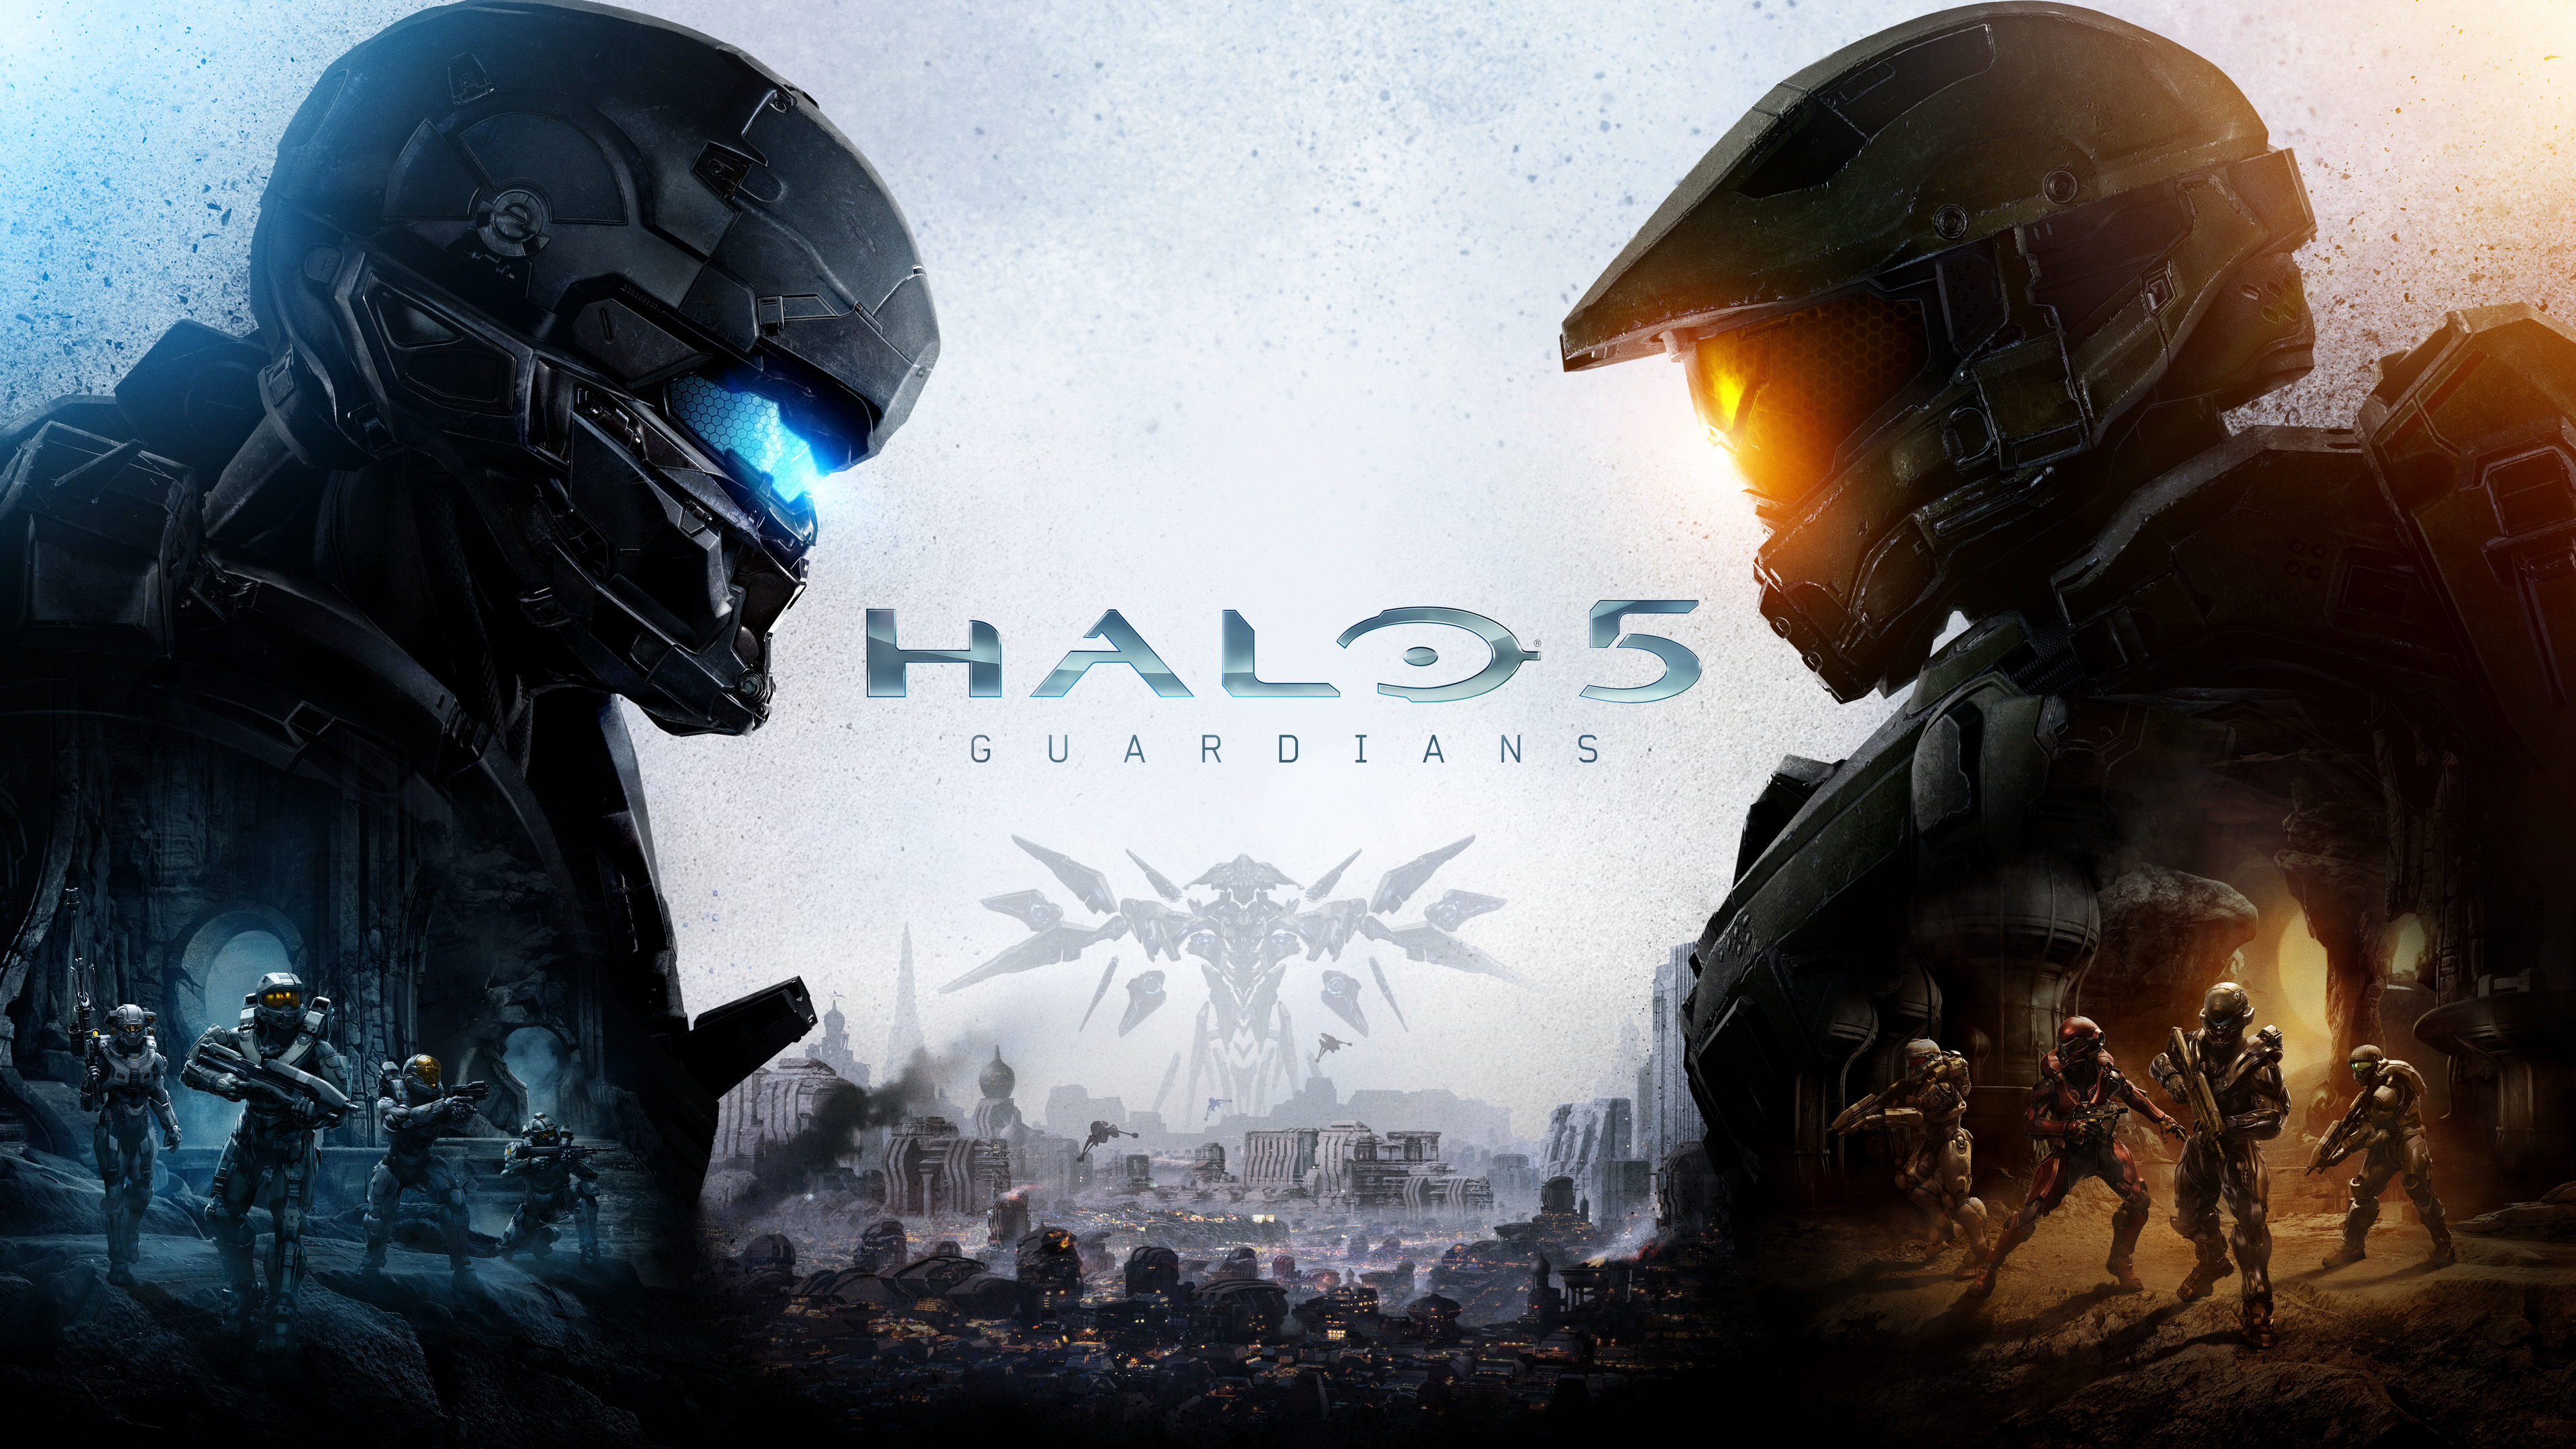 halo 5 hd 1535966358 - Halo 5 HD - halo 5 wallpapers, games wallpapers